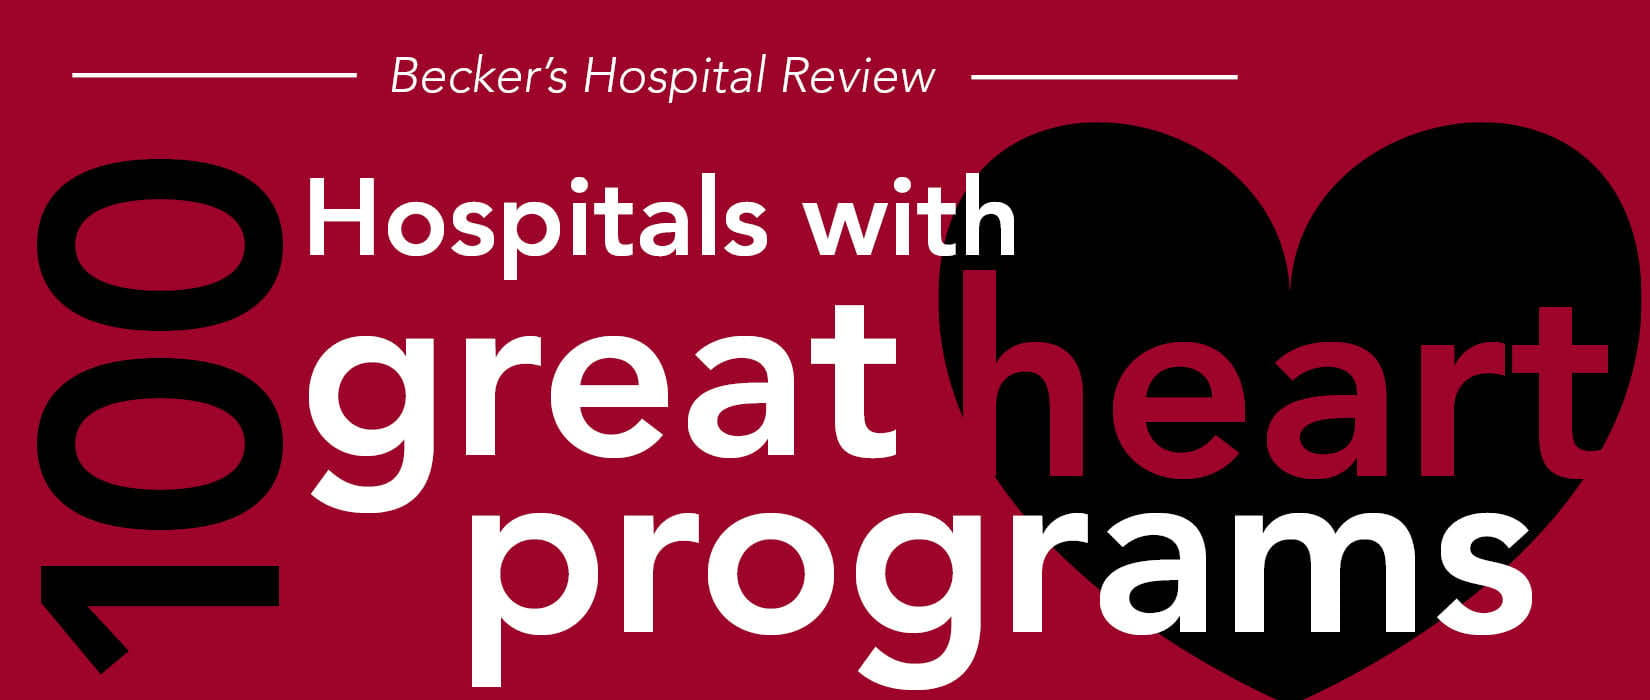 becker's hospital review 100 hospitals with great heart programs image